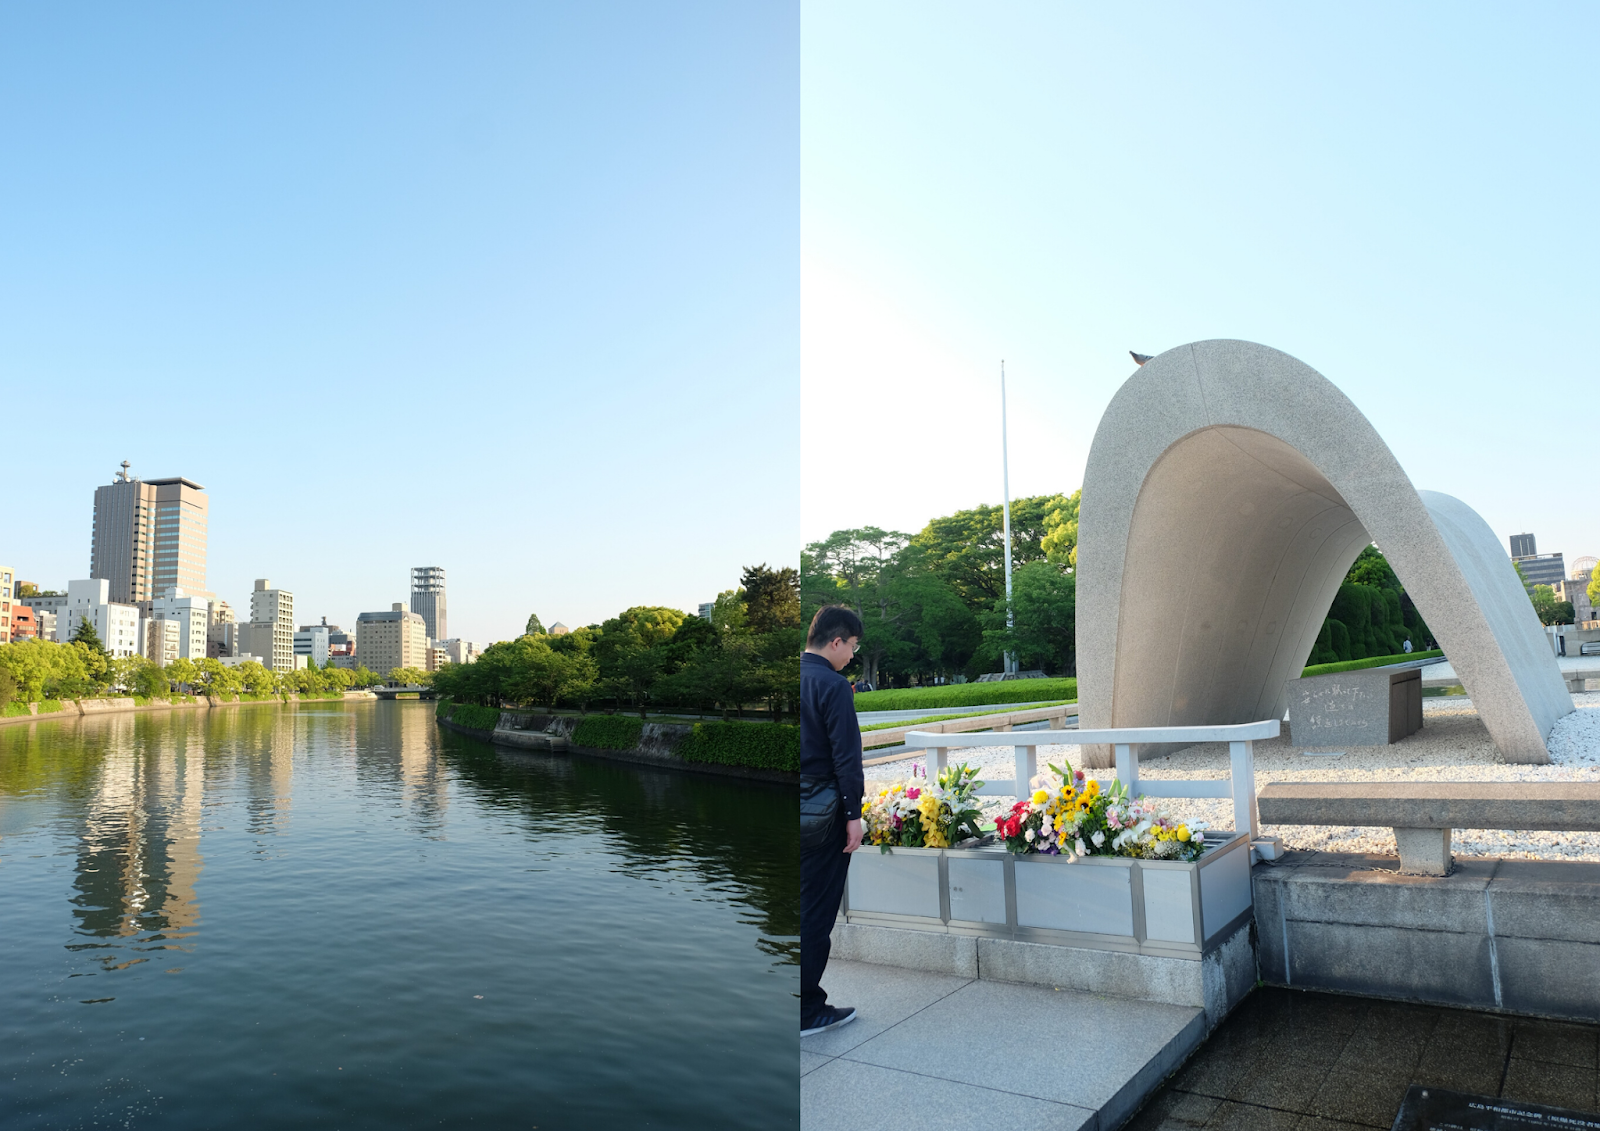 Hiroshima, The Peace Memorial Park Curitan Aqalili